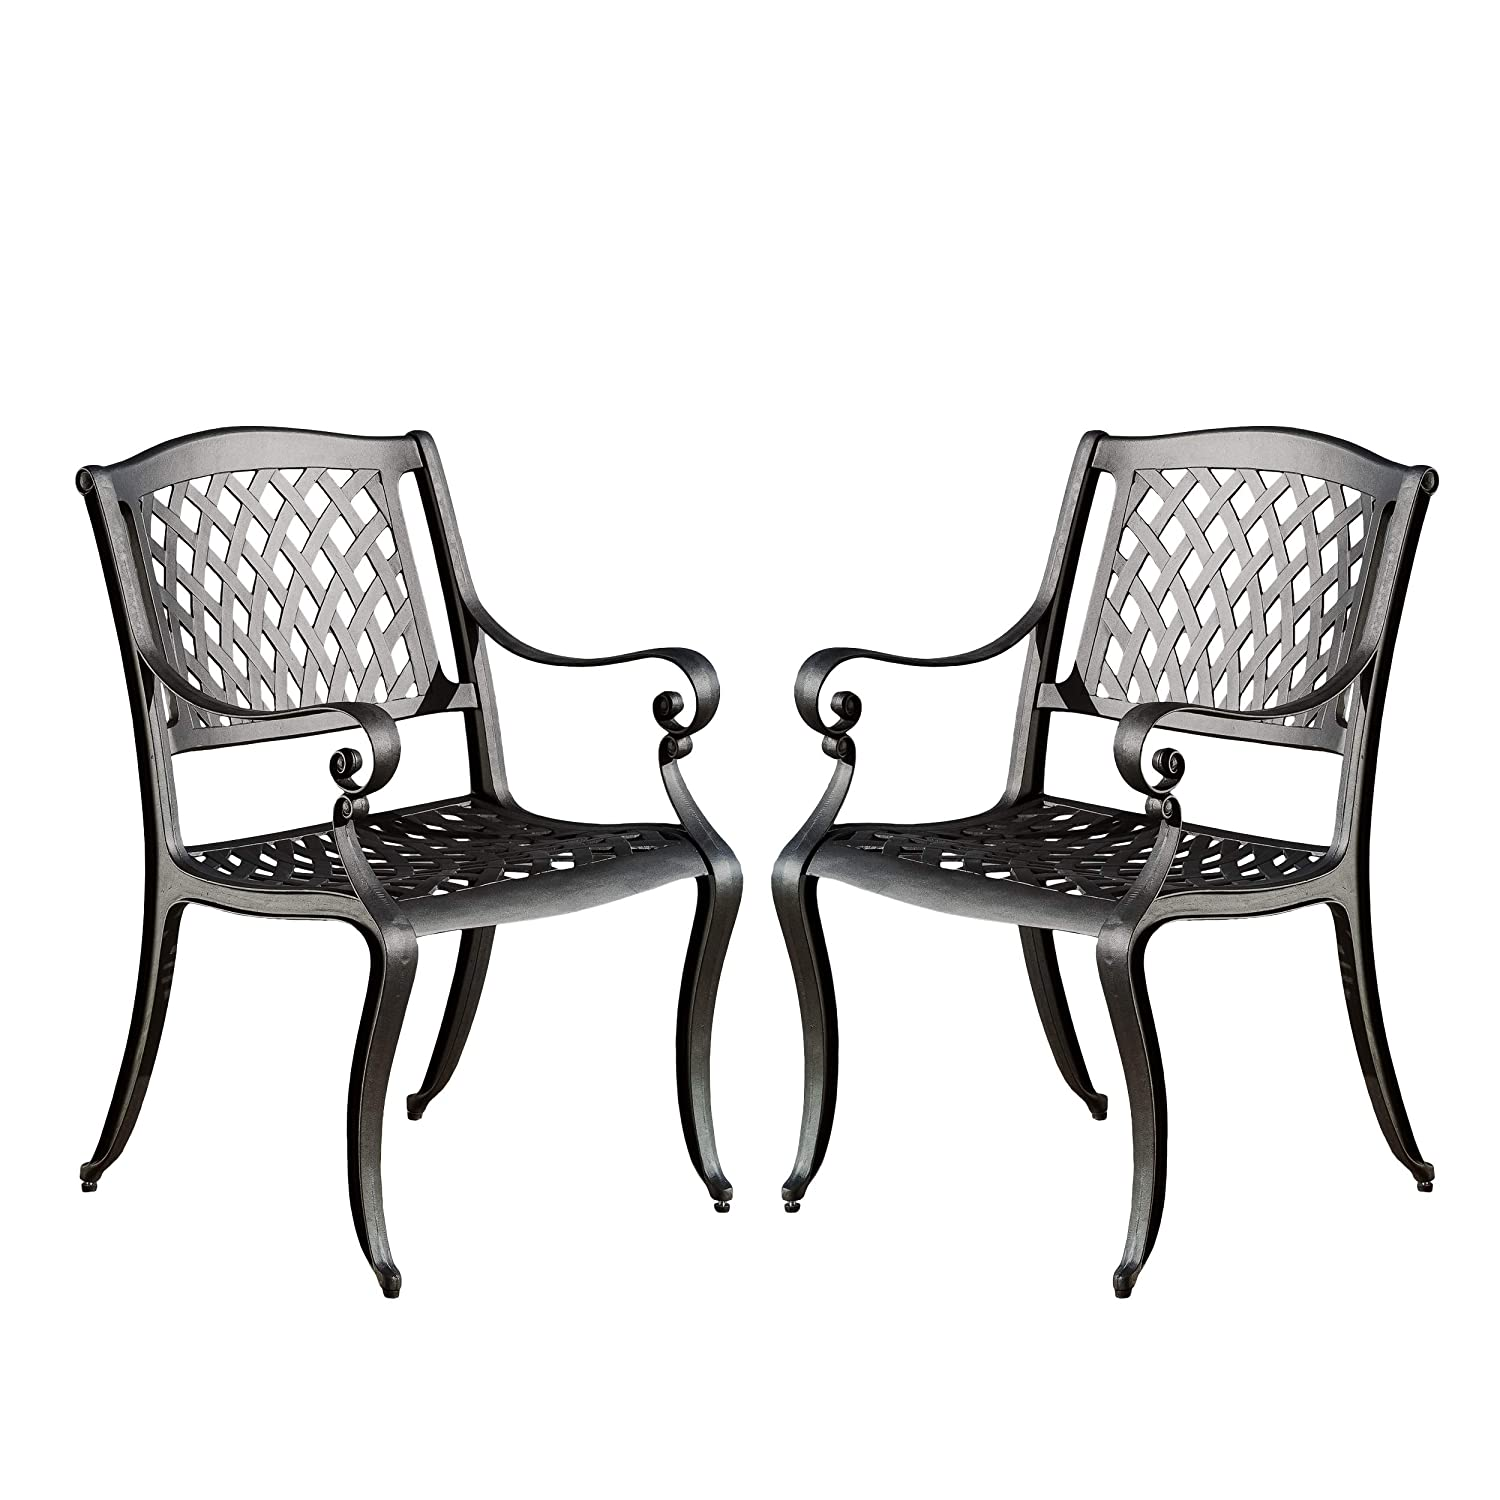 Amazon com christopher knight home marietta outdoor cast aluminum dining chairs set of 2 garden outdoor